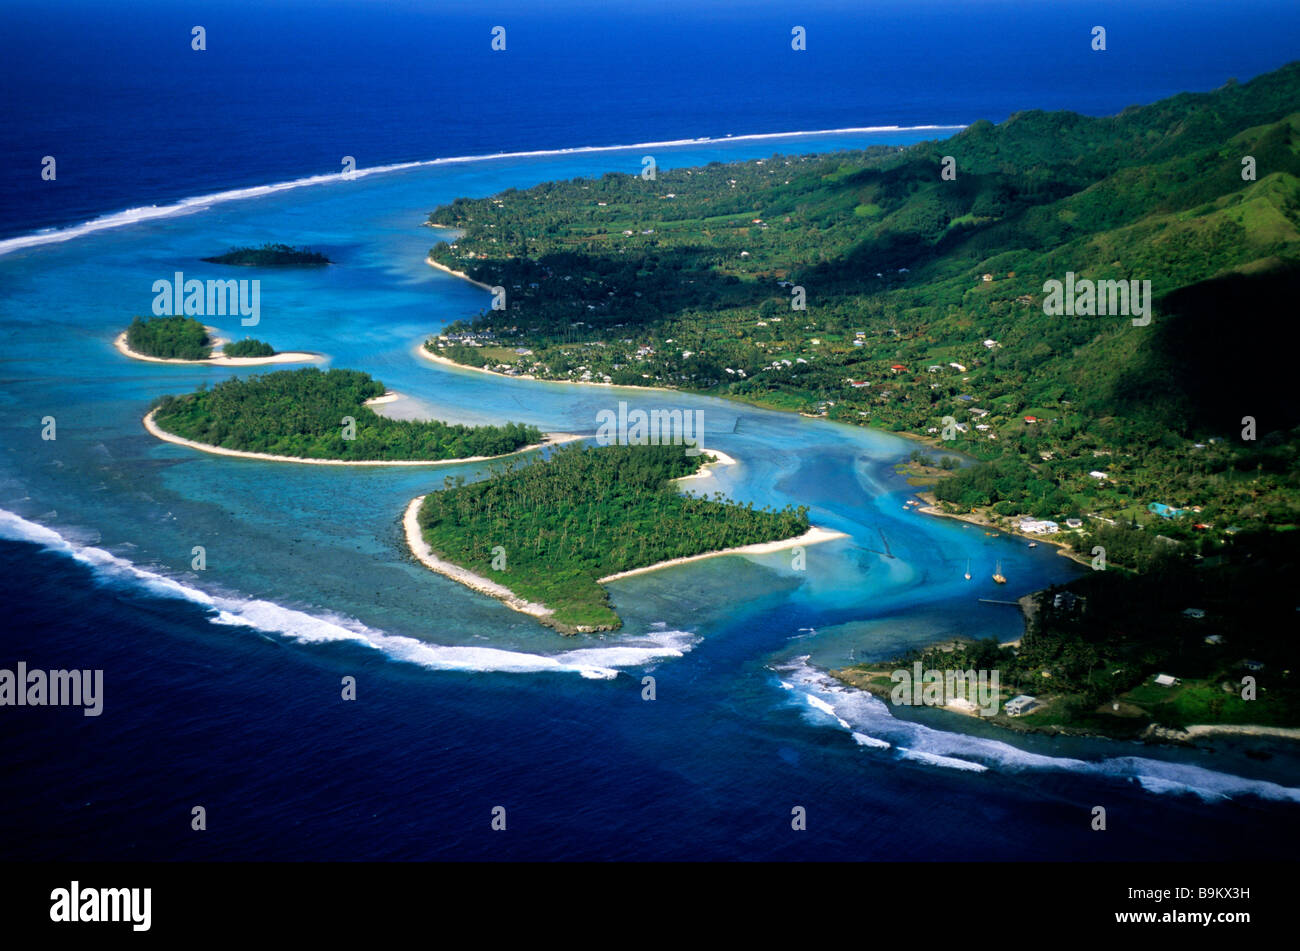 South Pacific, Cook Archipelago, Rarotonga Island (aerial view) - Stock Image